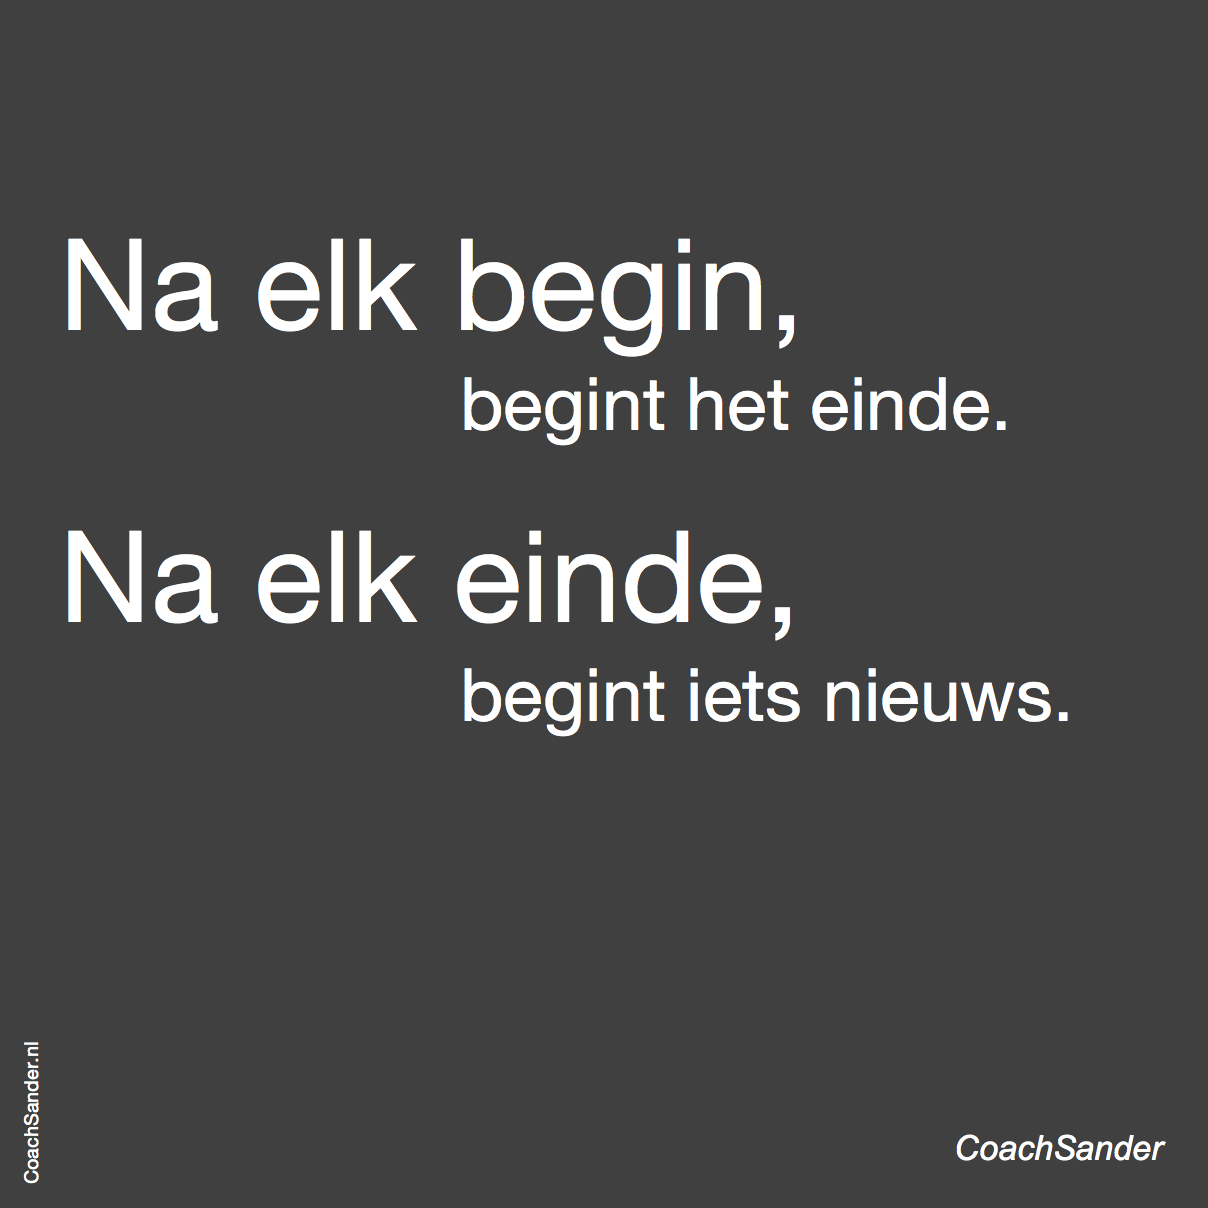 Na elk begin... CoachSander.nl